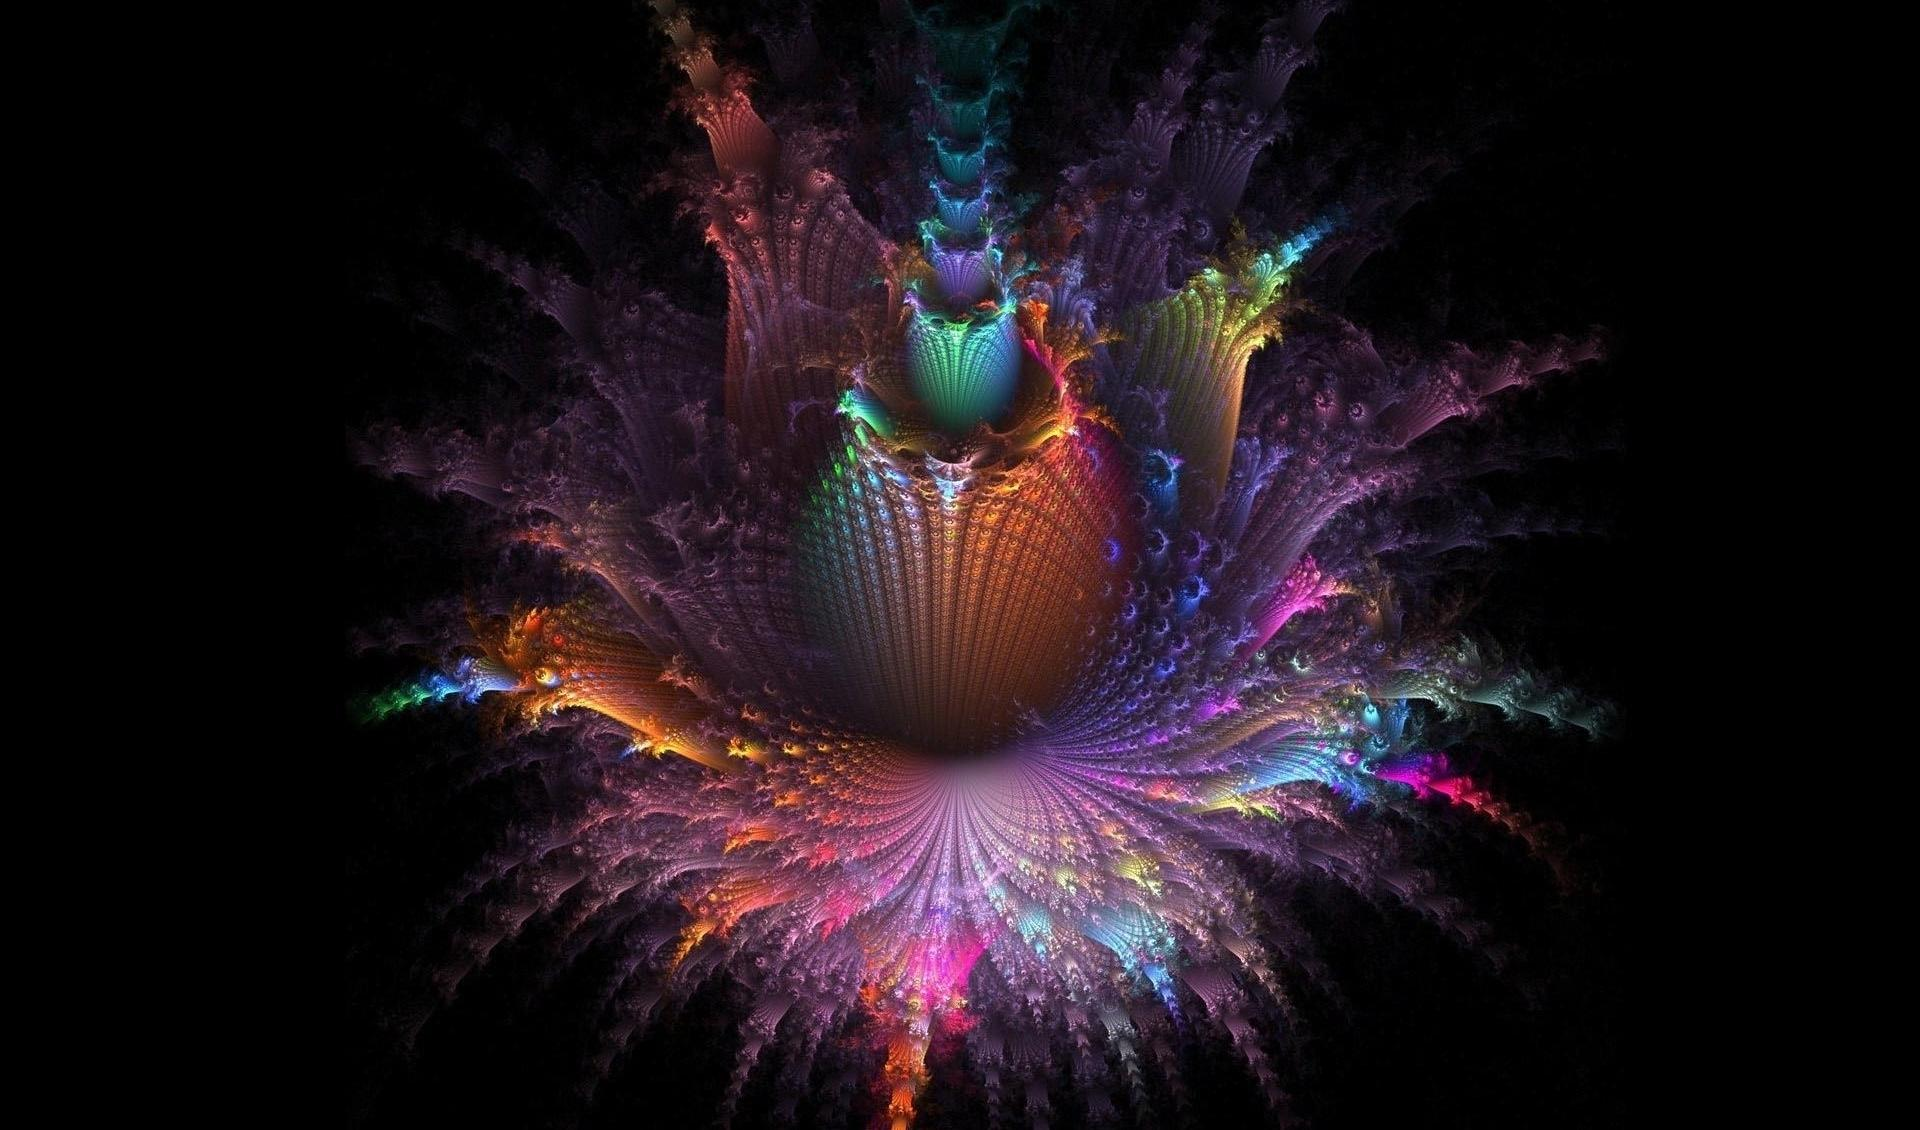 Amazing colors on the fractal flower wallpapers HD quality